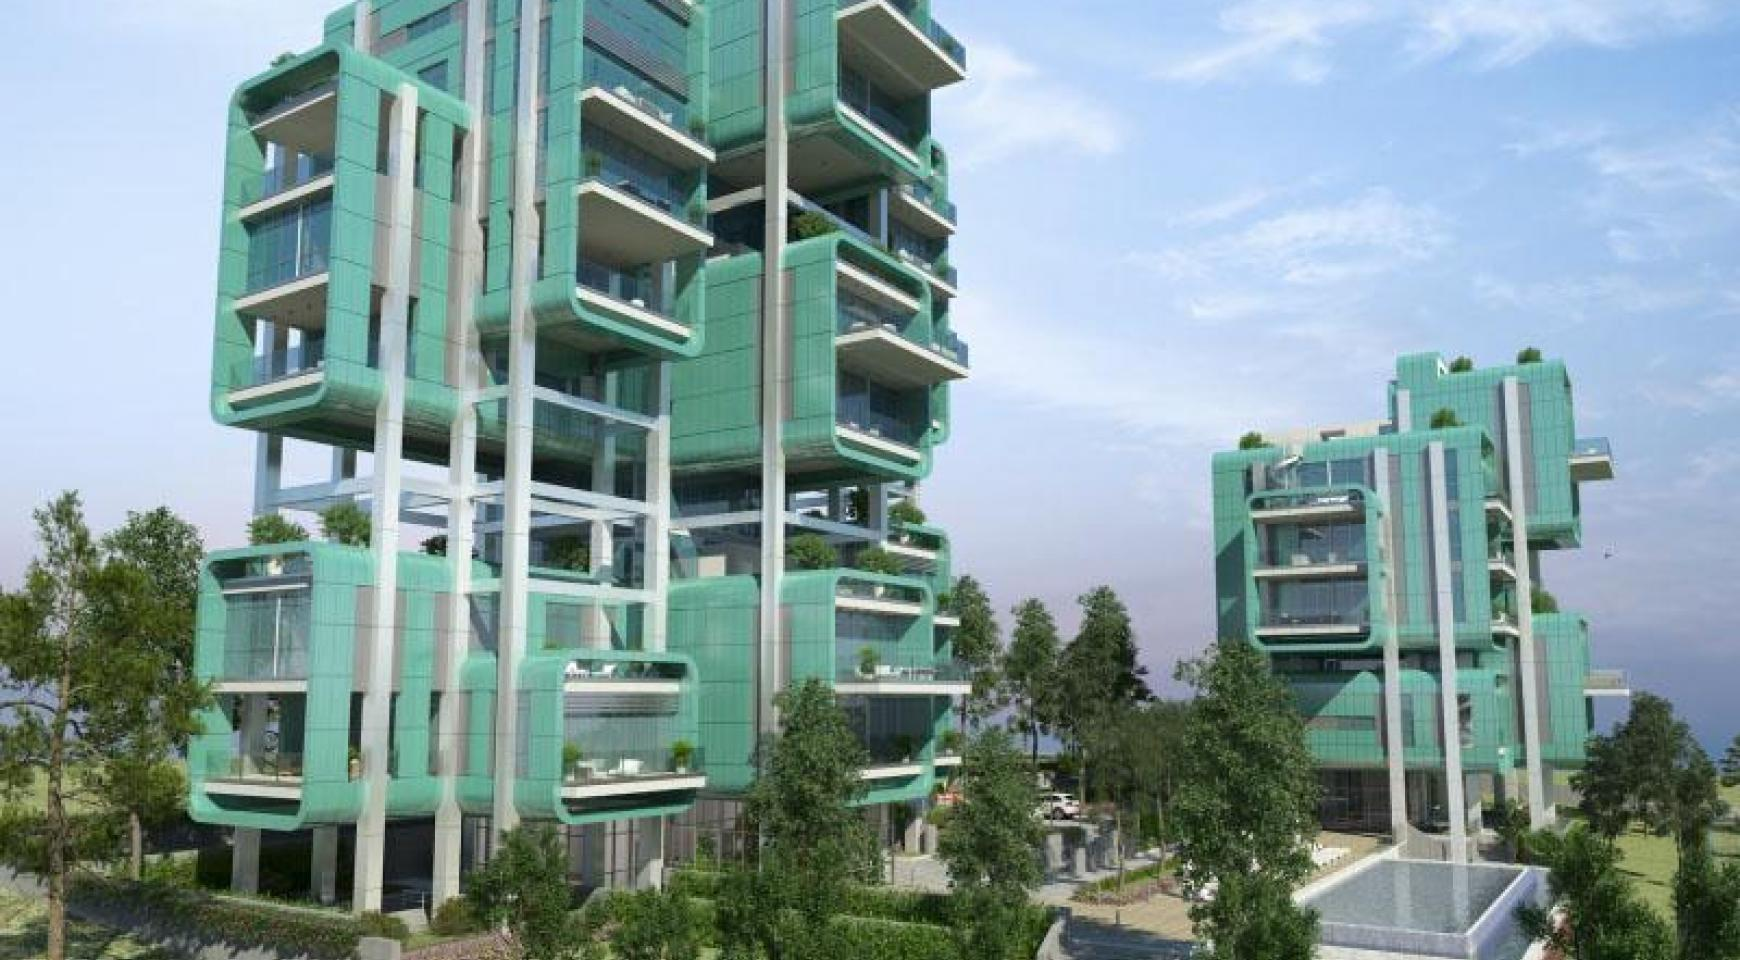 3 Bedroom Apartment with Roof Garden within a New Complex - 27